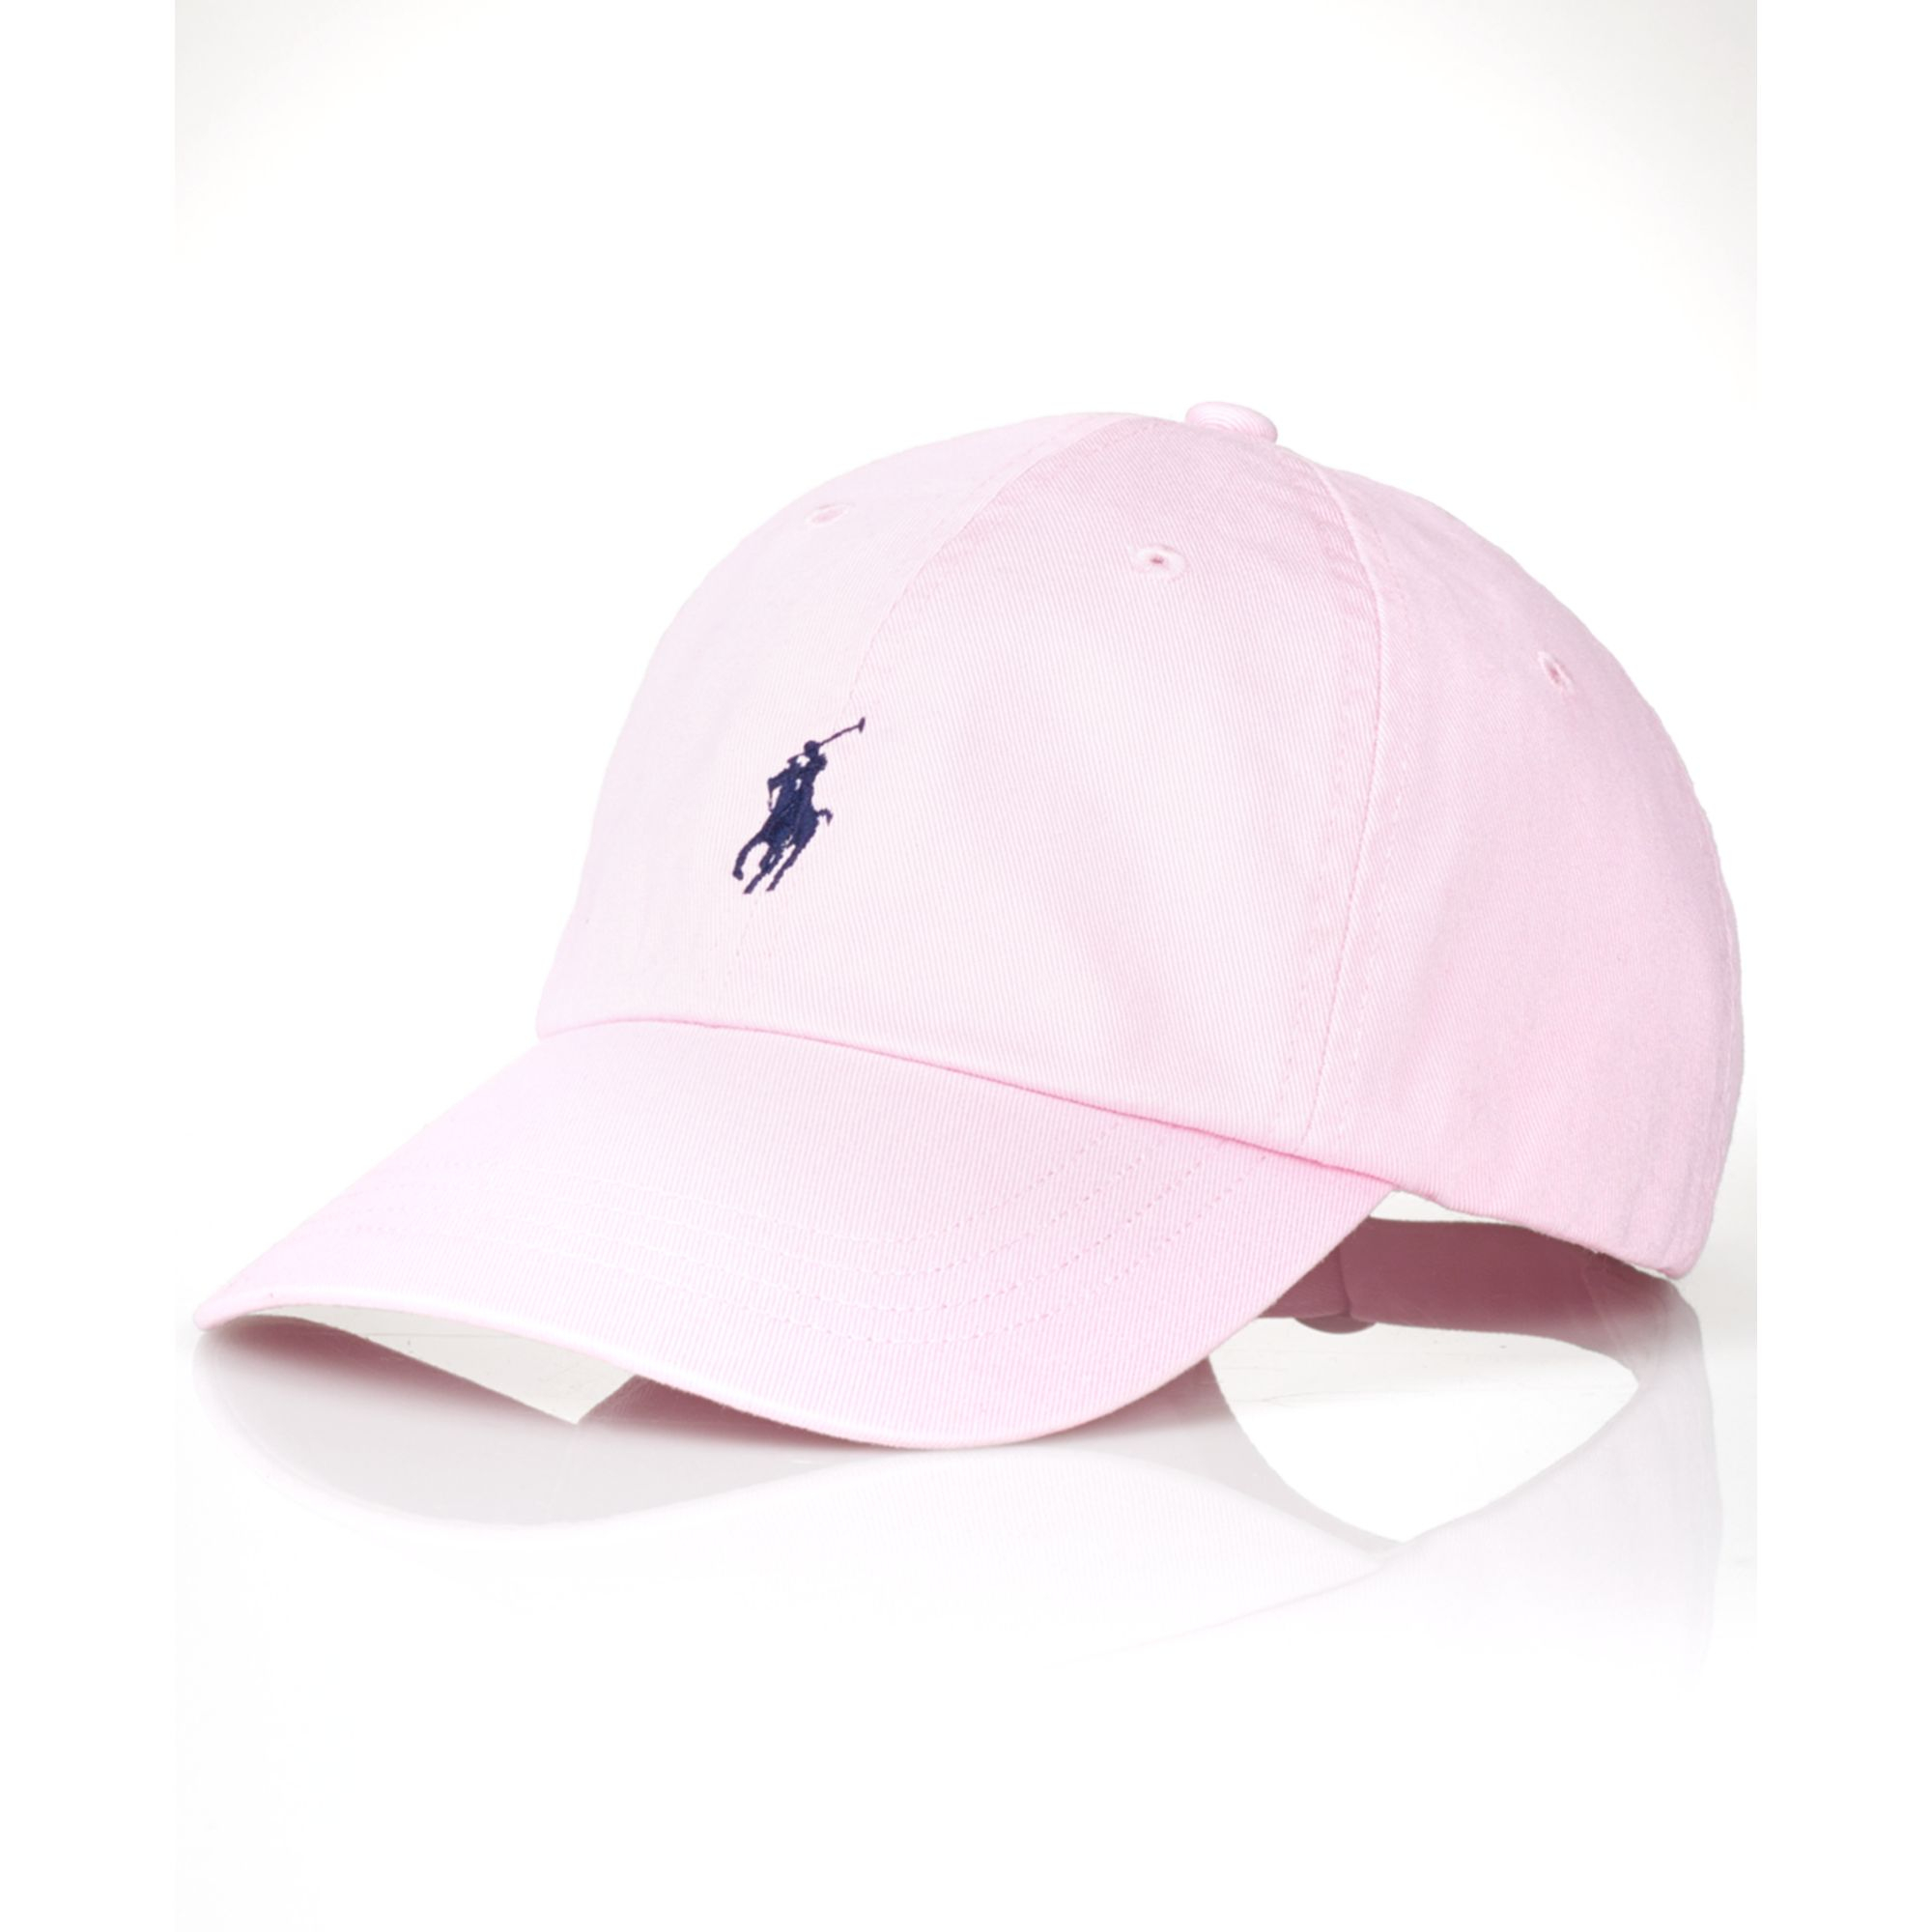 ralph lauren polo classic chino sports cap in pink for men. Black Bedroom Furniture Sets. Home Design Ideas